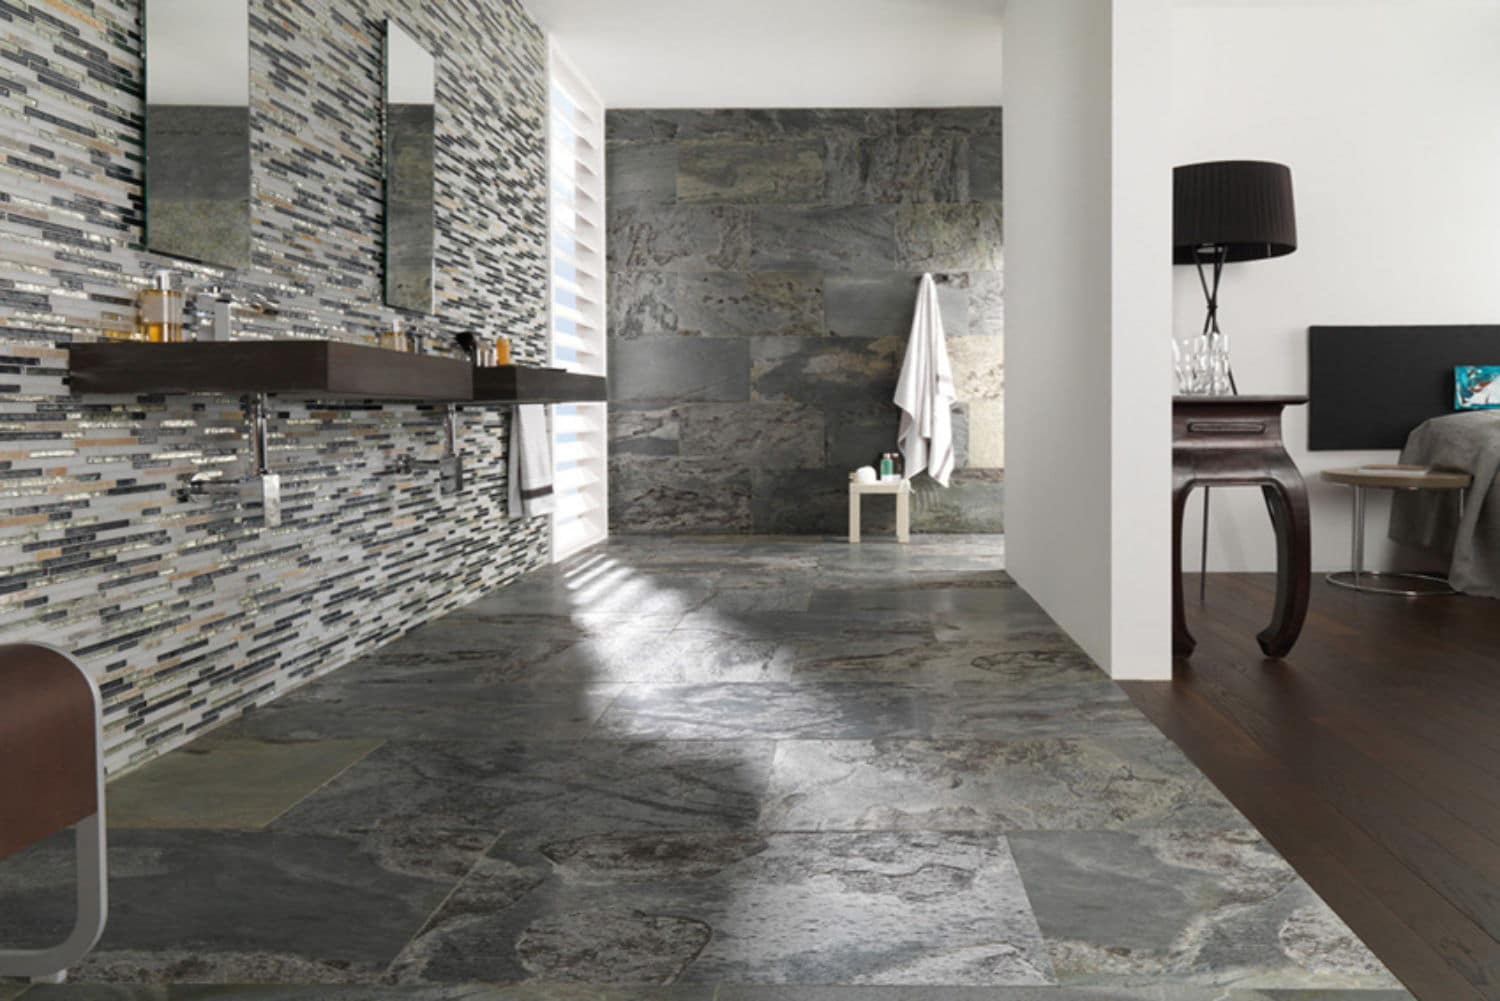 mosaico treasures mist shannan strip parqute piccola scuro1 1024x768